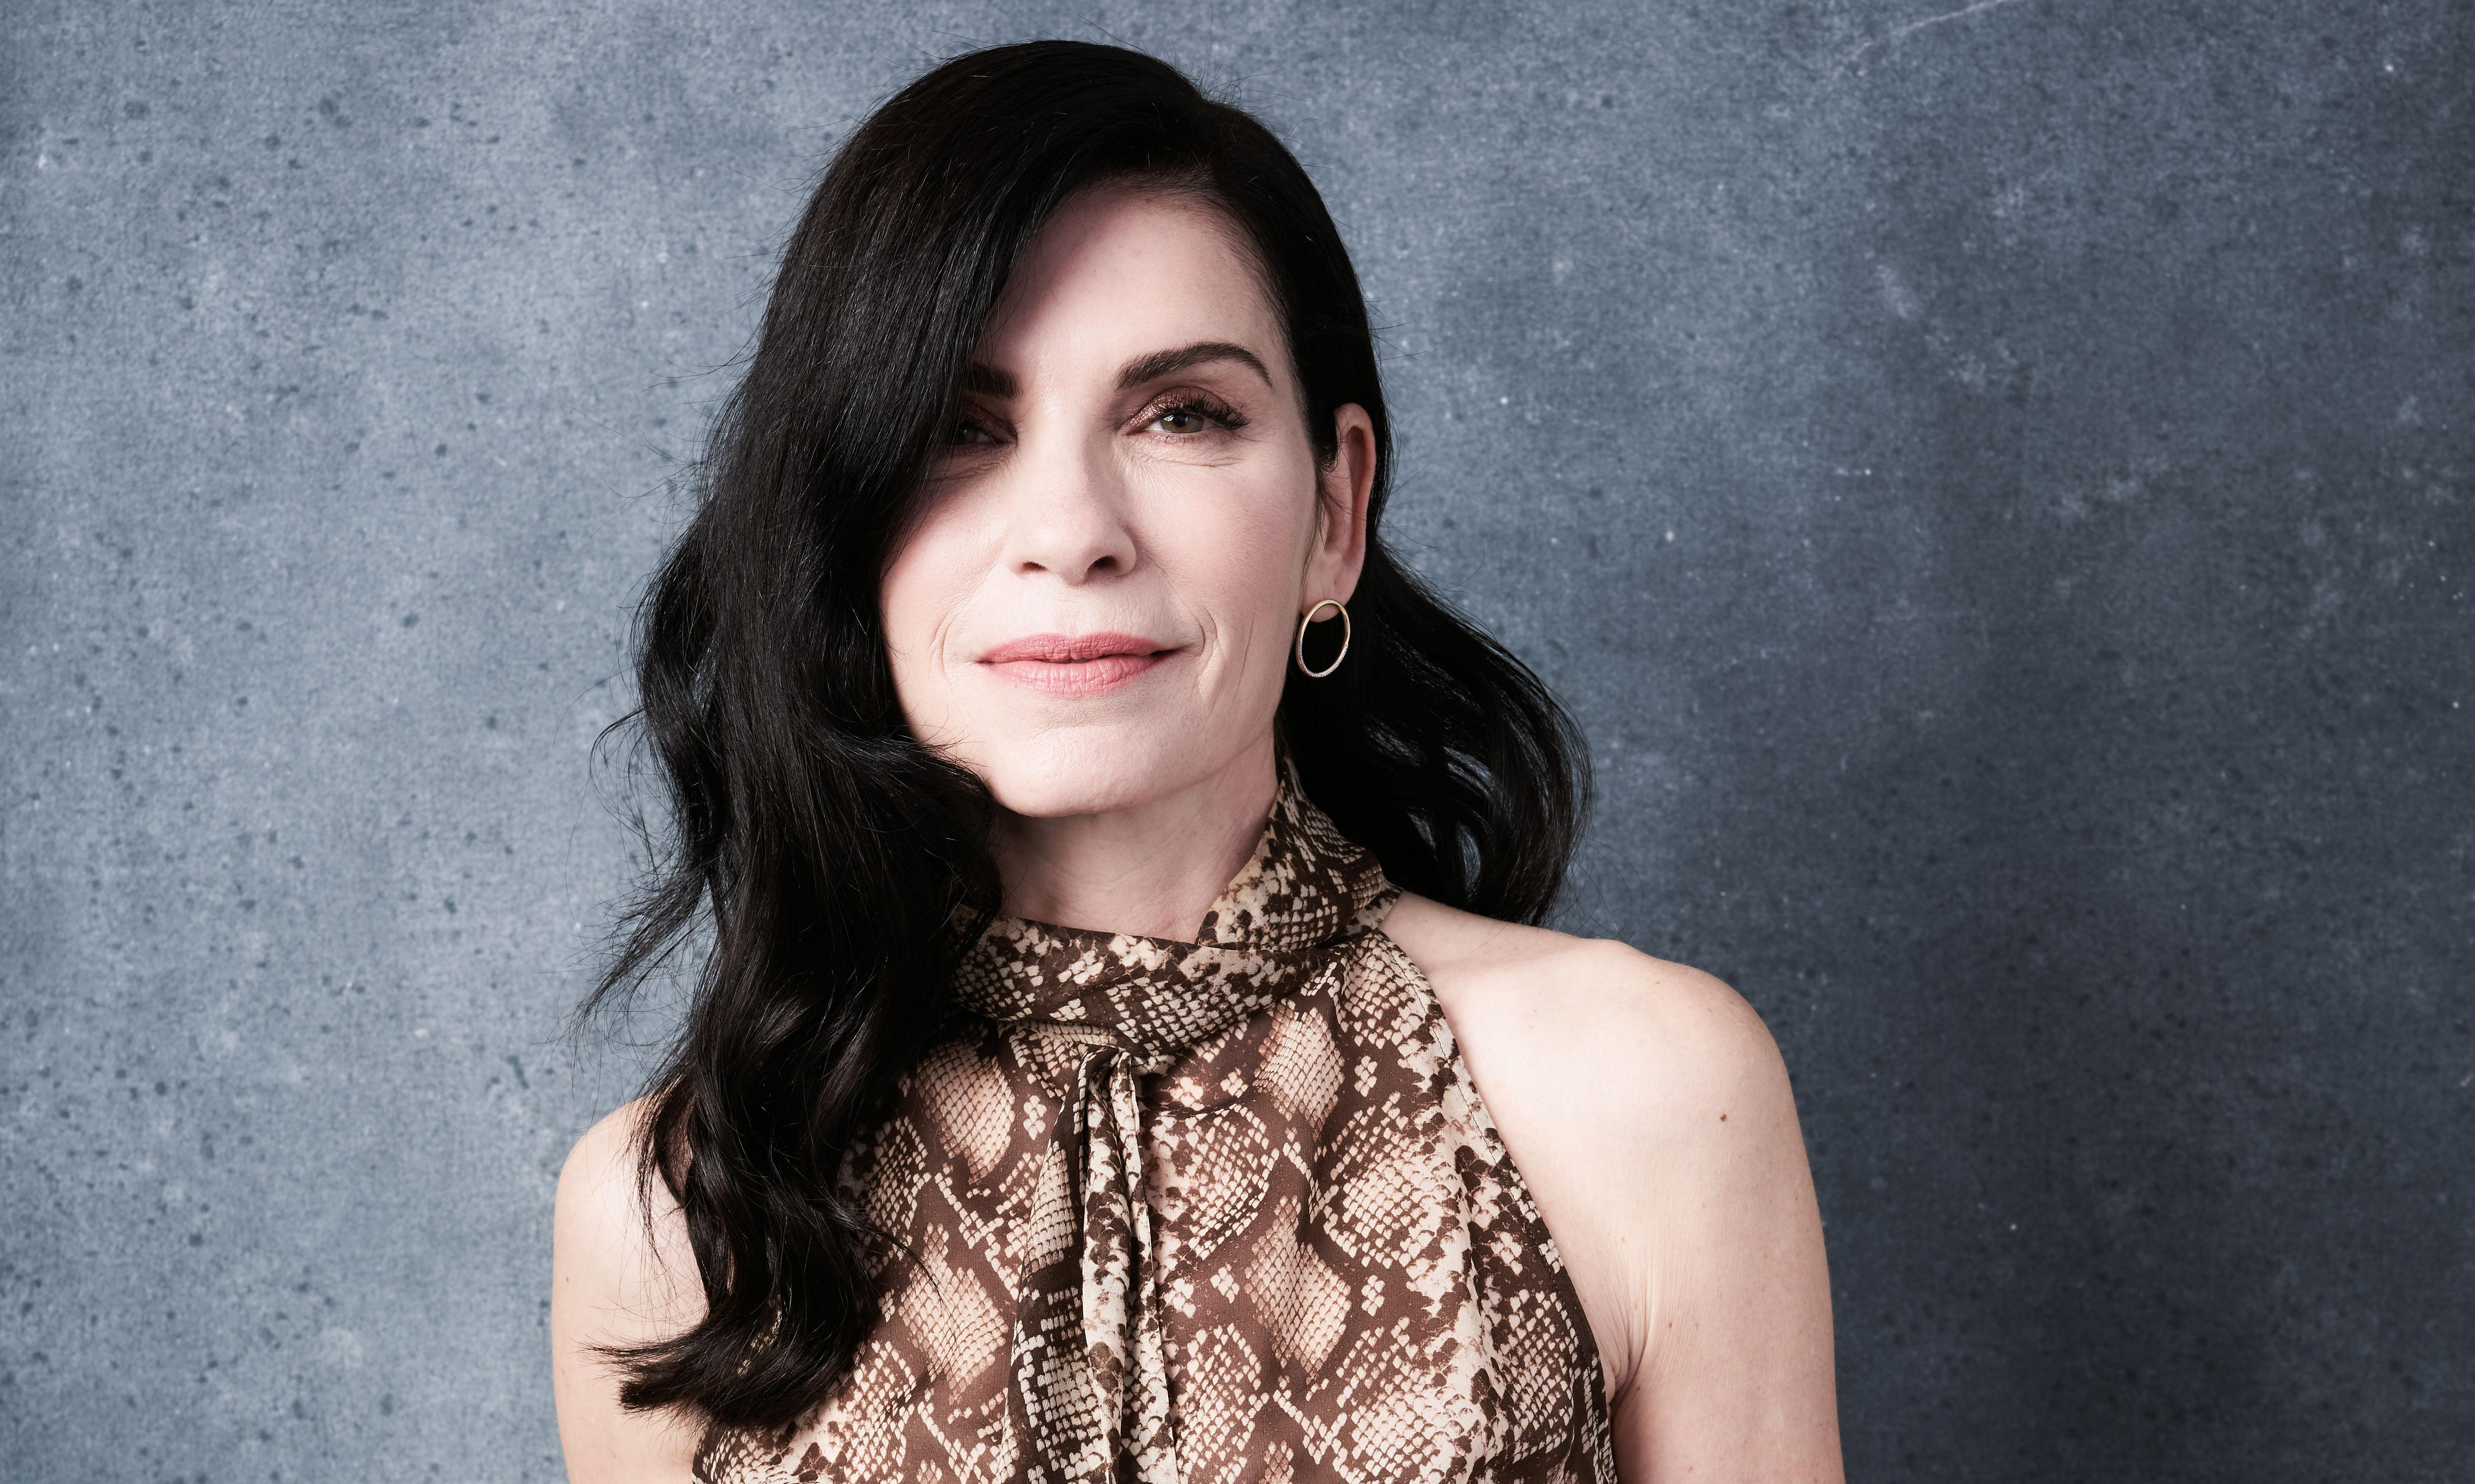 Julianna Margulies on her shocking Ebola drama: 'I panicked in my hazmat suit!'